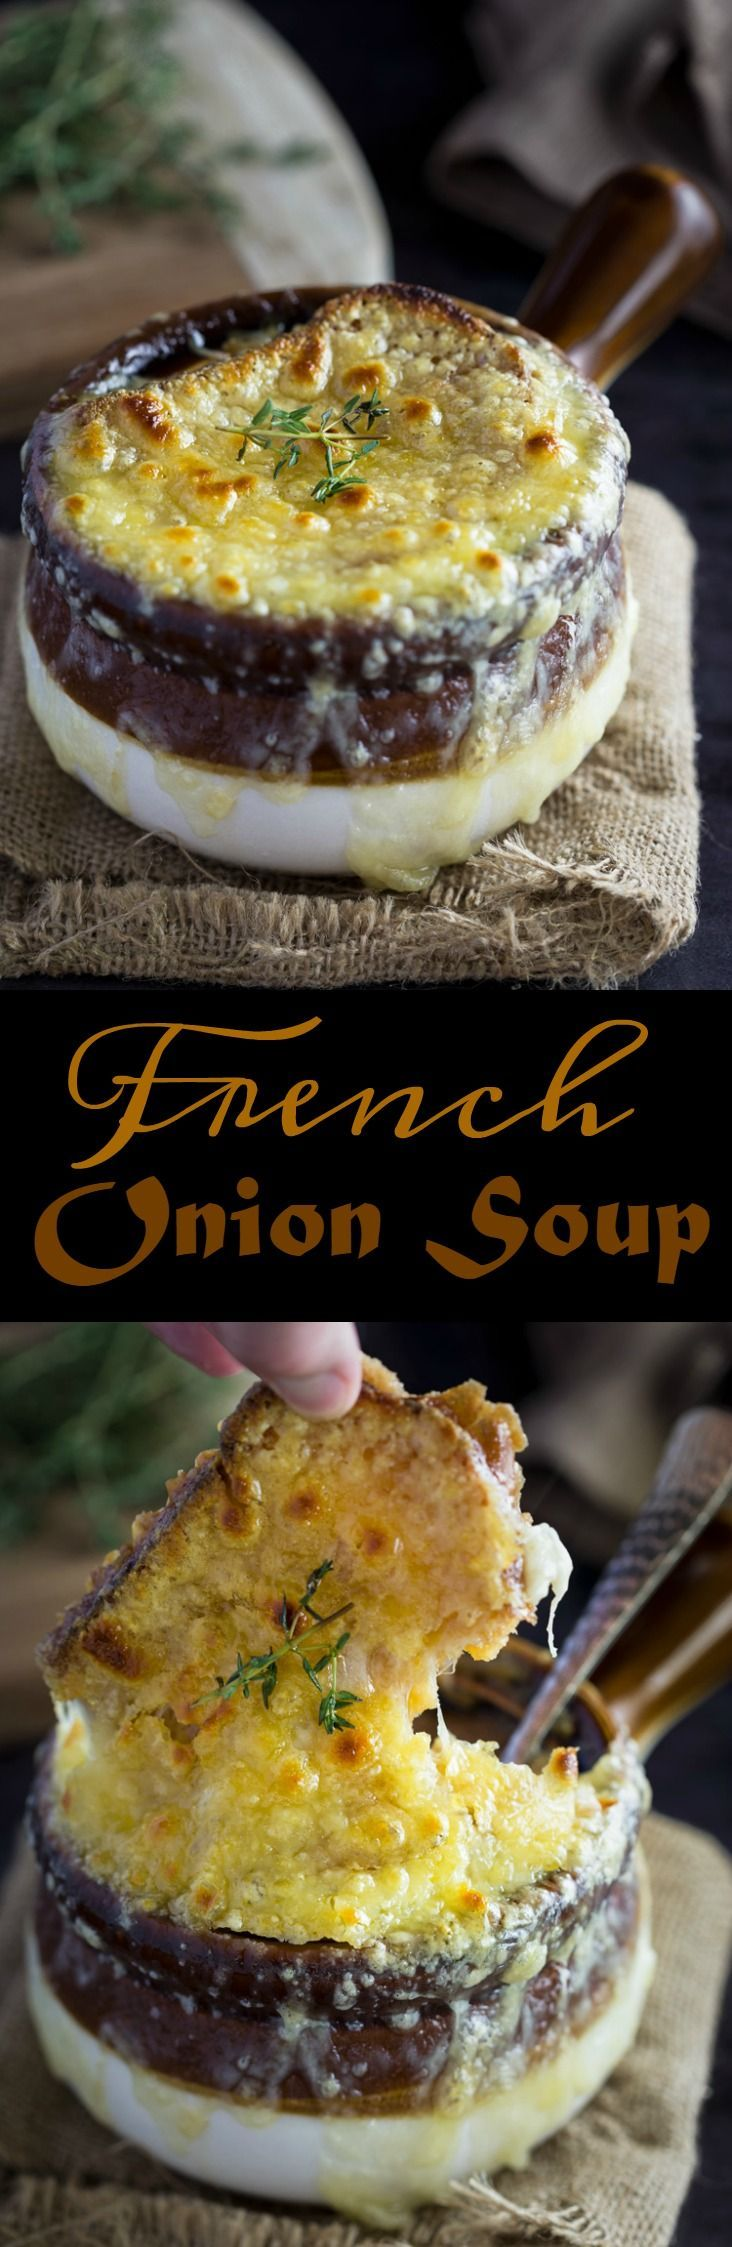 This classic French Onion Soup has a rich, silky broth made from thinly sliced onions, butter, white wine, beef broth, fresh thyme and bay leaves. All topped with a toasted baguette and hot, bubbly Gruyere cheese.